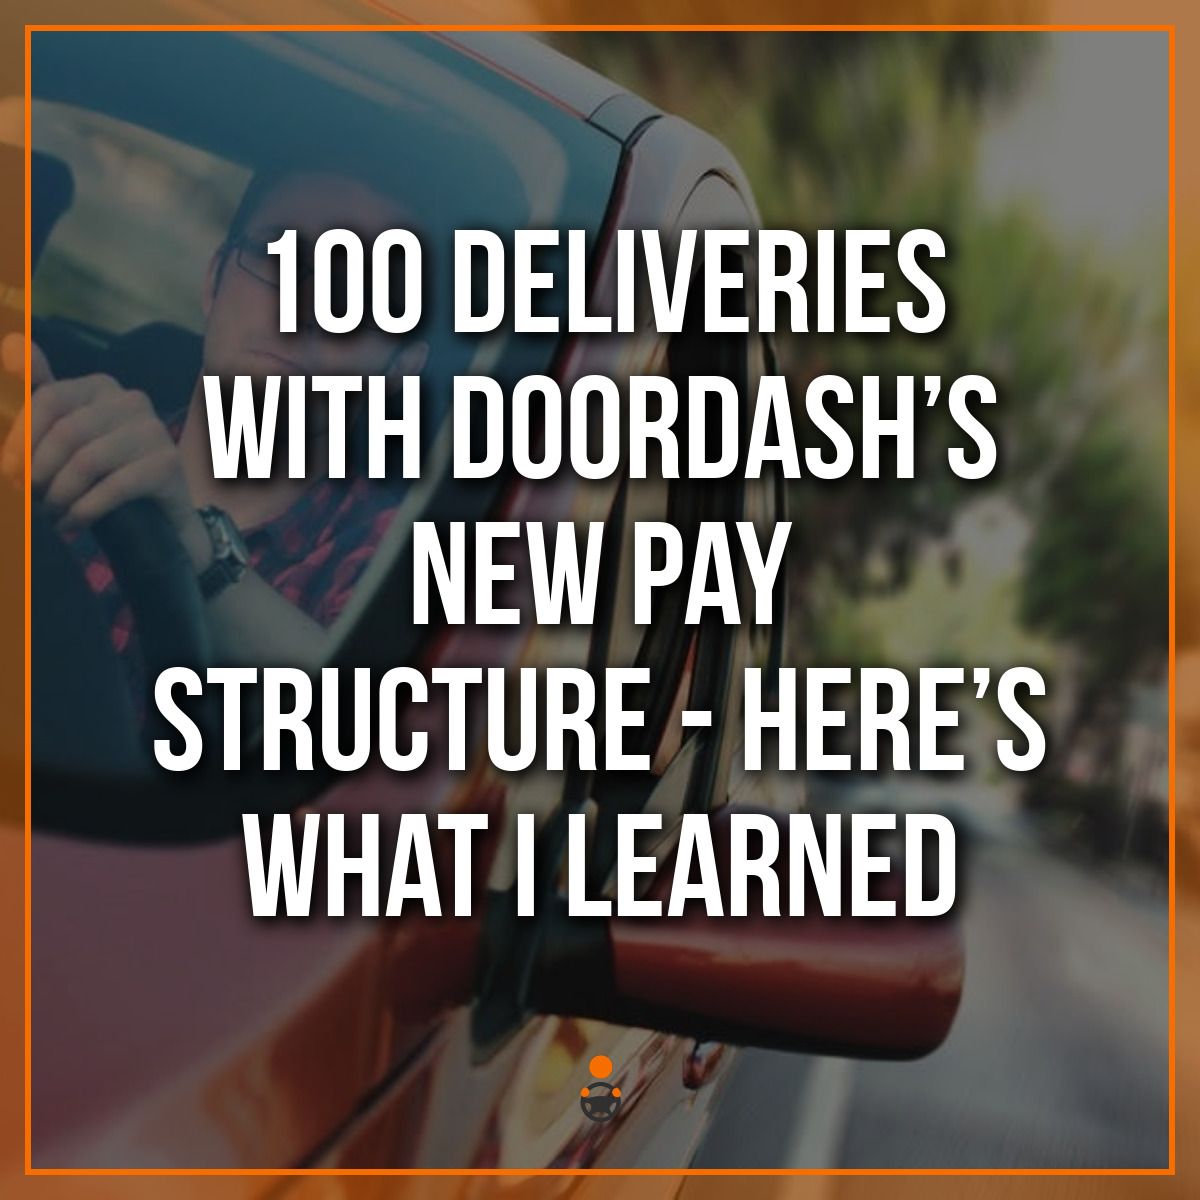 100 Deliveries with DoorDash's New Pay Structure – Here's What I Learned